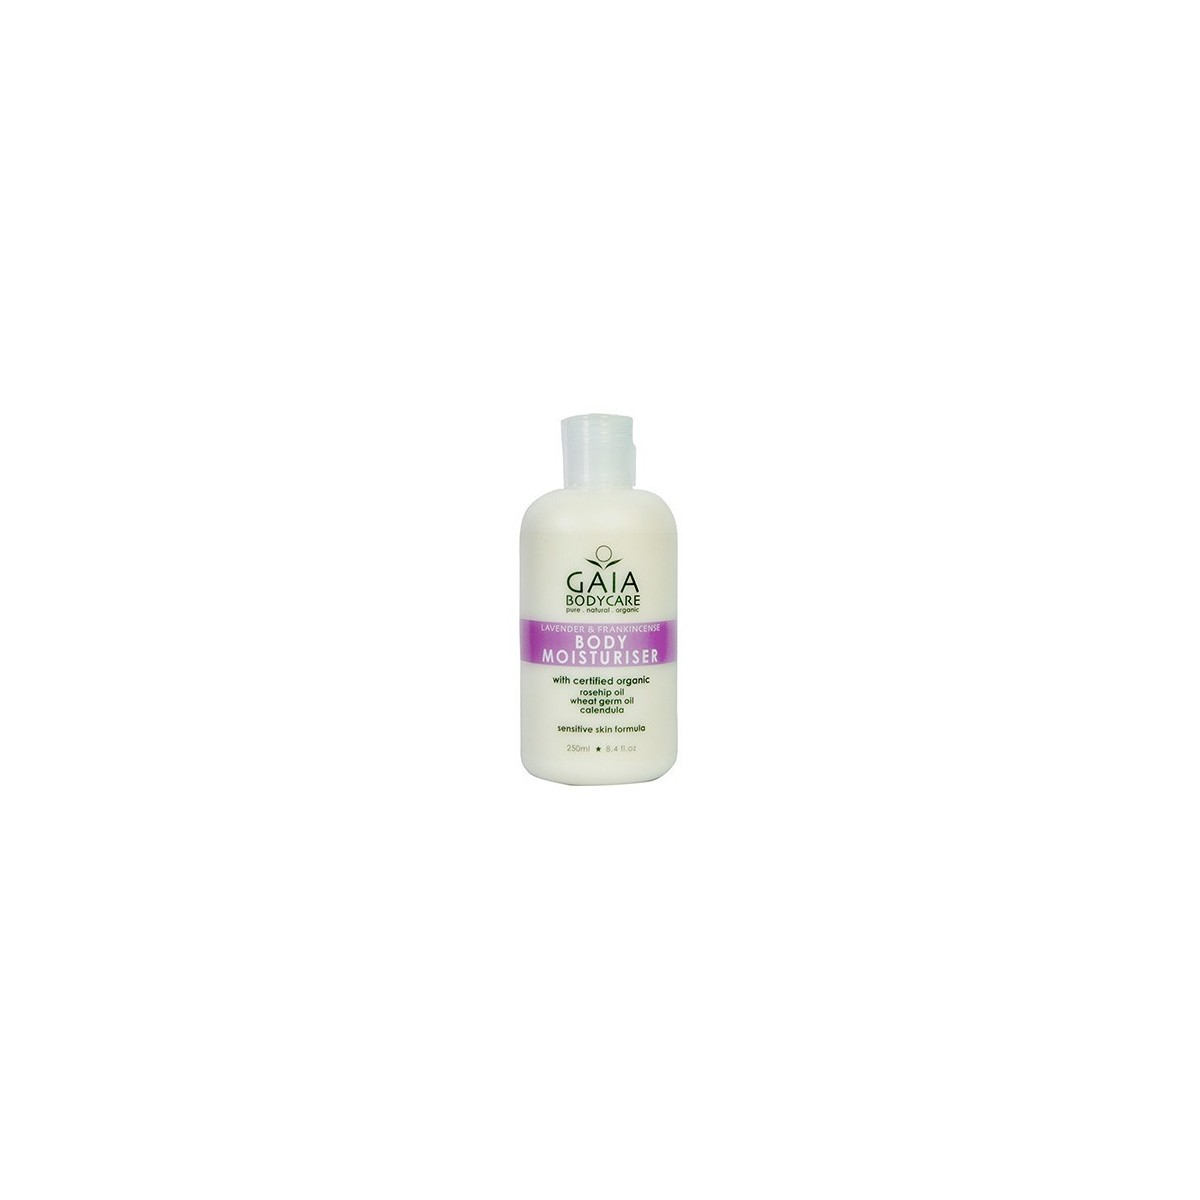 Gaia Body Care Body Moisturiser Lavender & Frankincense 250ml